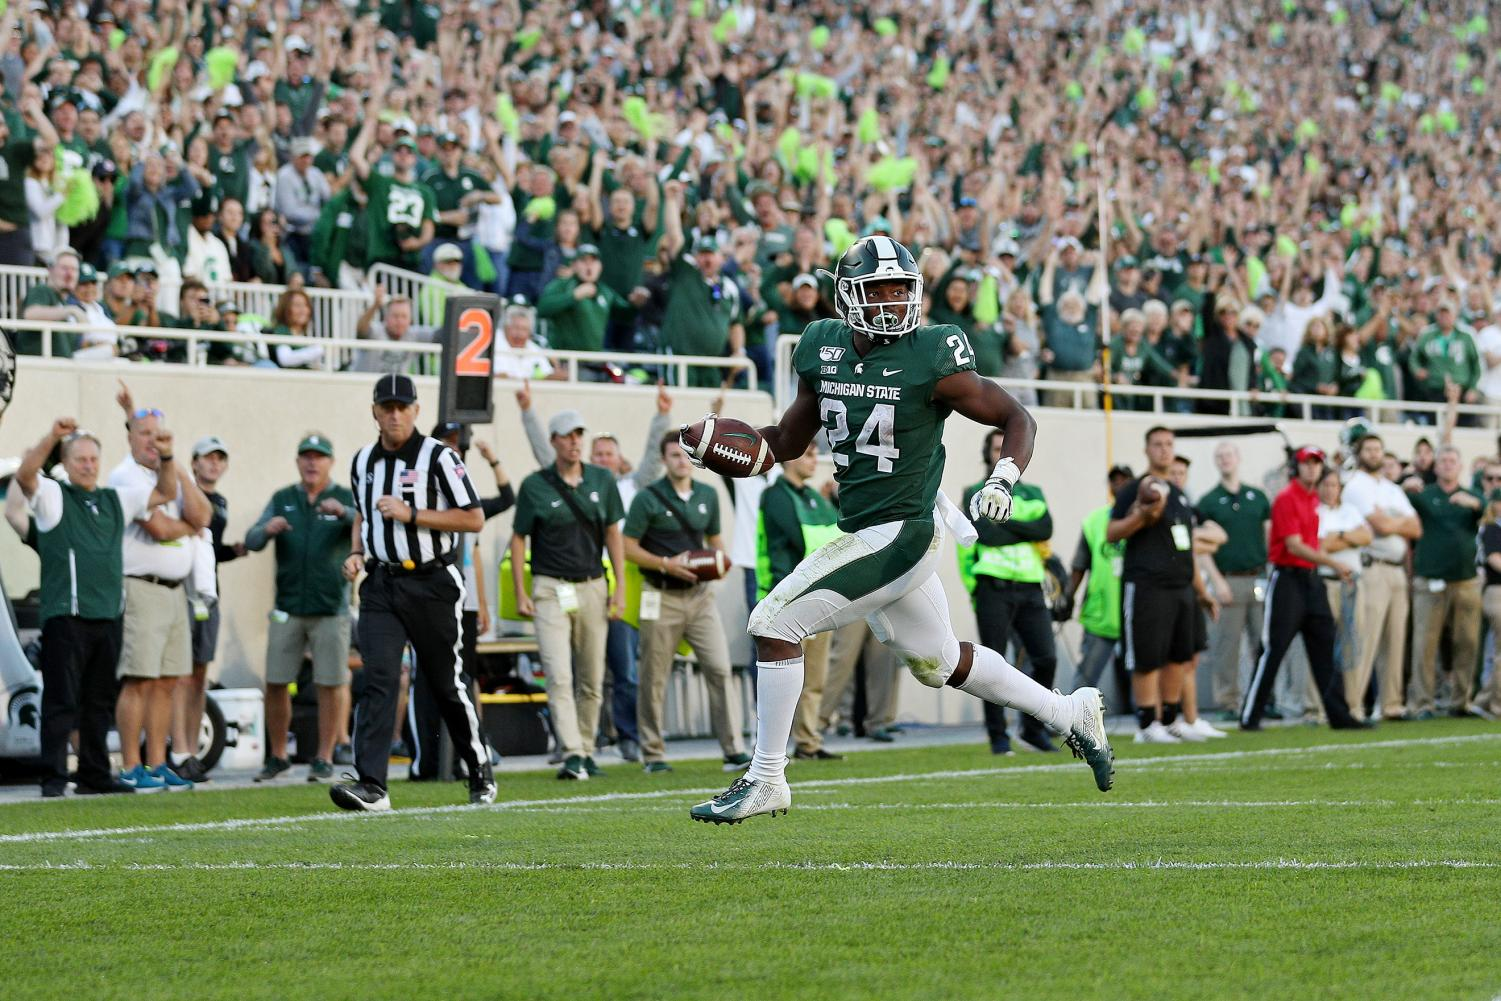 Michigan State running back Elijah Collins (24) runs for a touchdown in the fourth quarter against Arizona State.